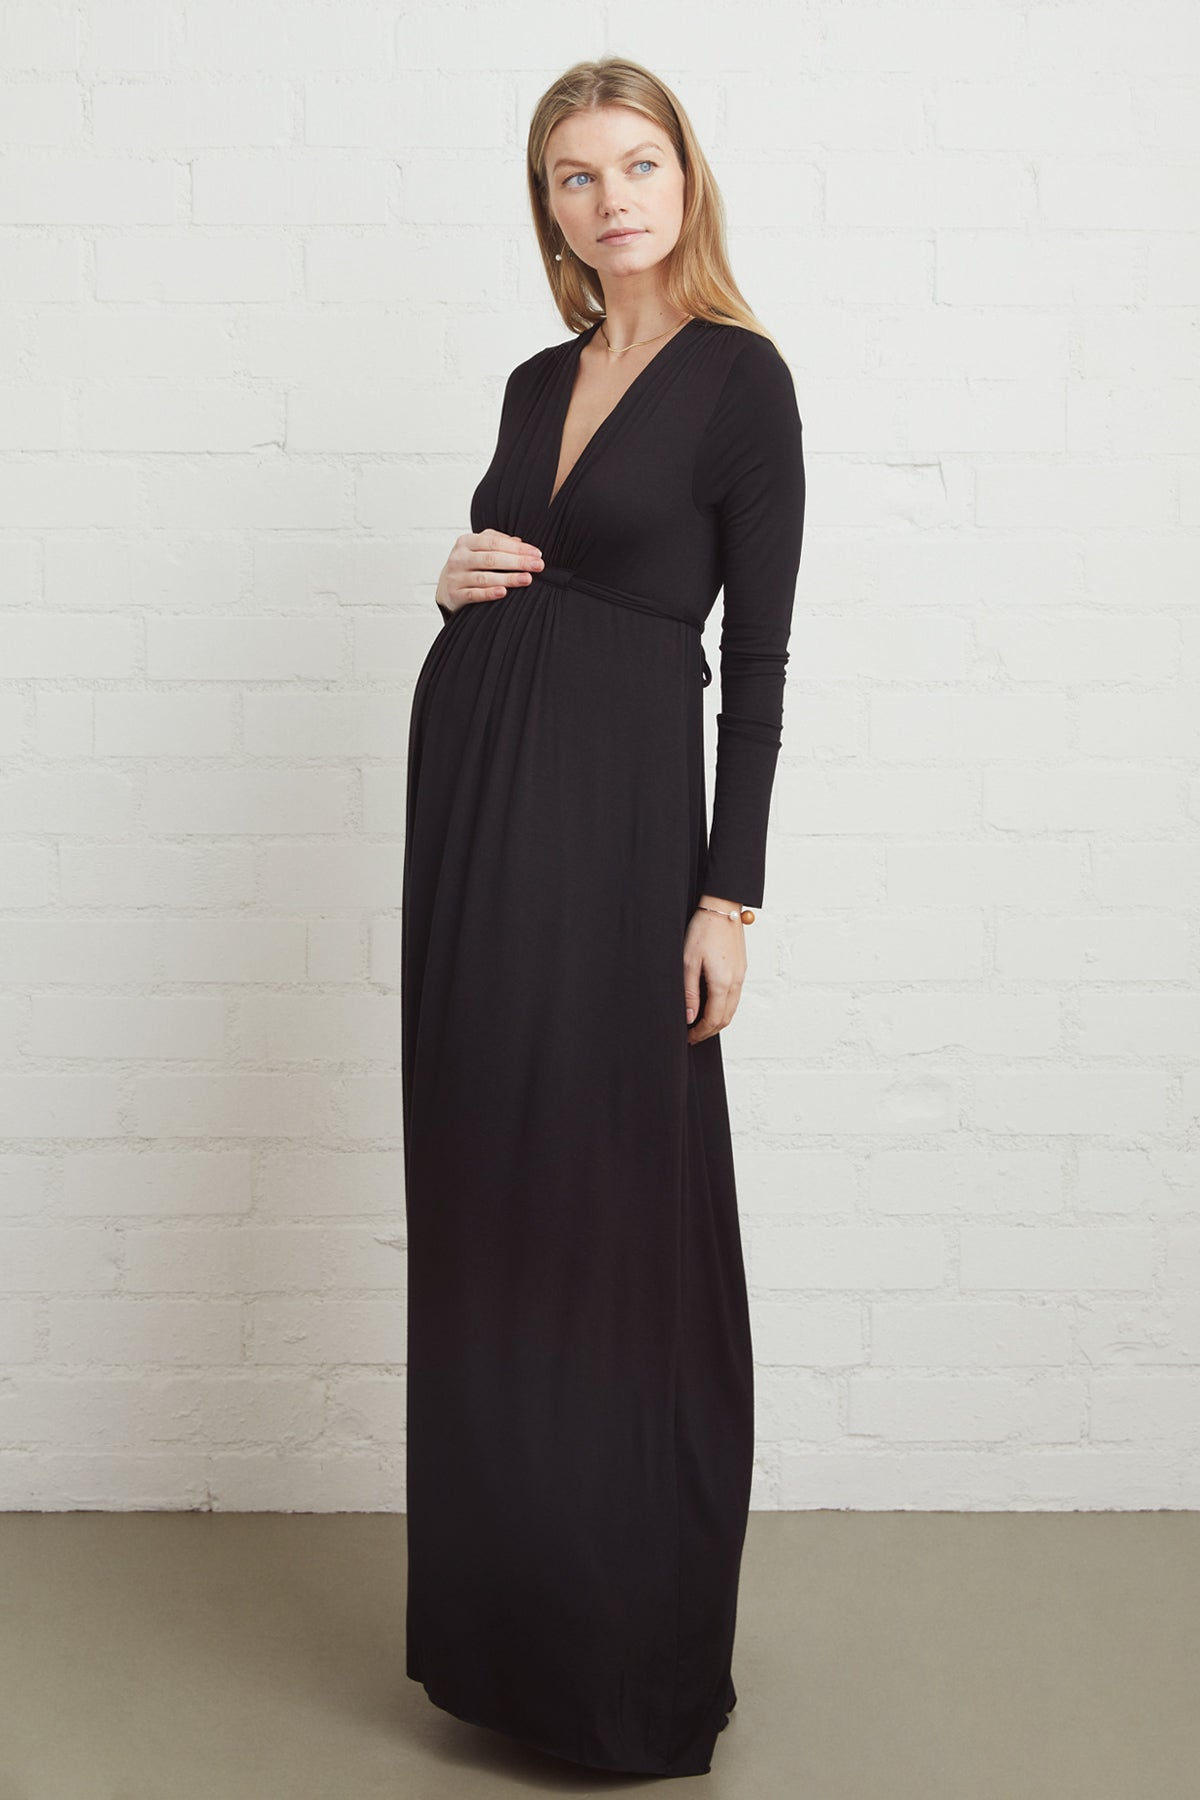 Long Sleeve Full Length Caftan - Black, Maternity